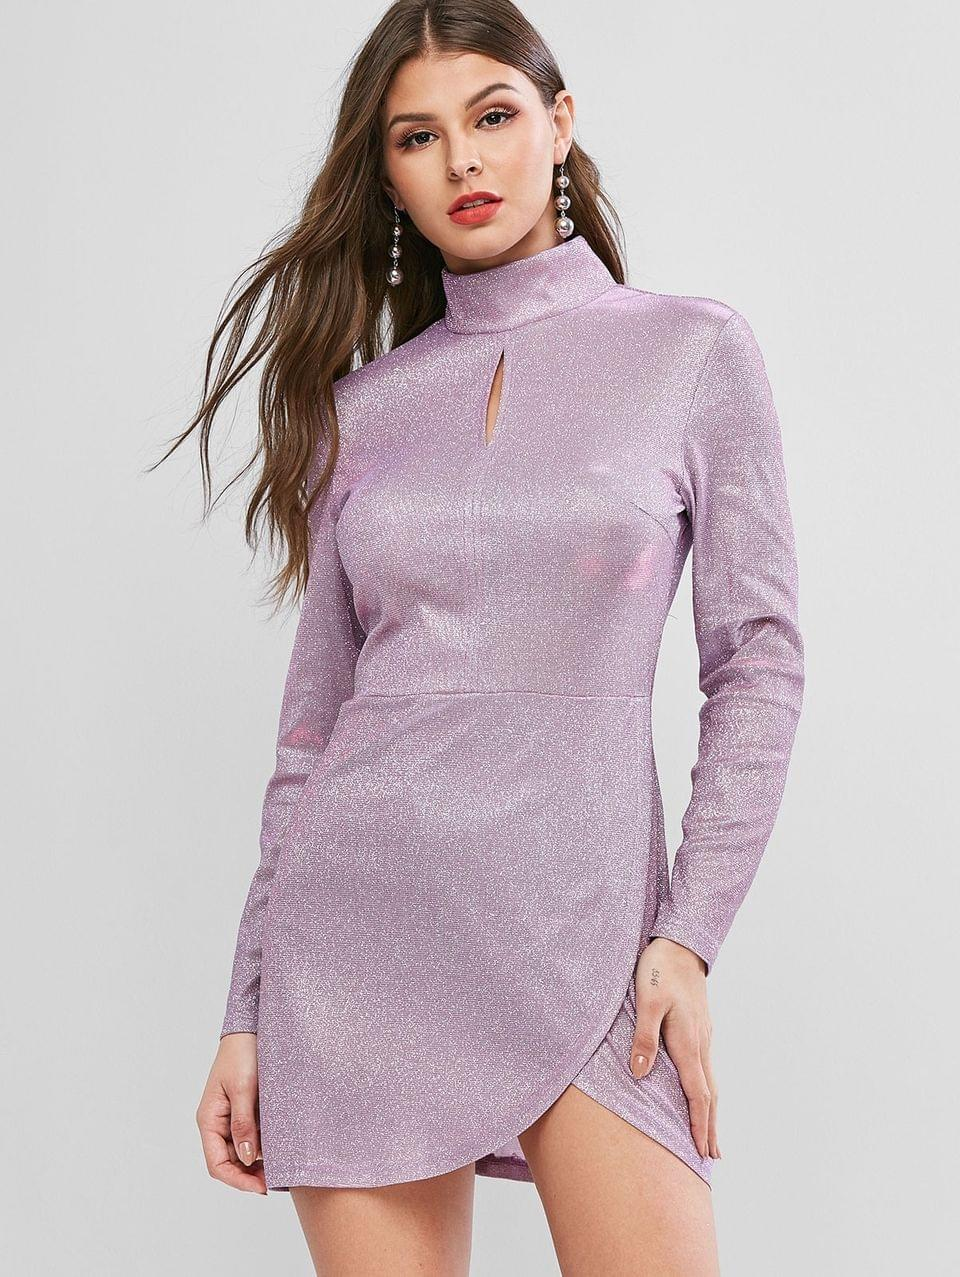 Women's Glitter Mock Neck Mini Bodycon Dress - Mauve M